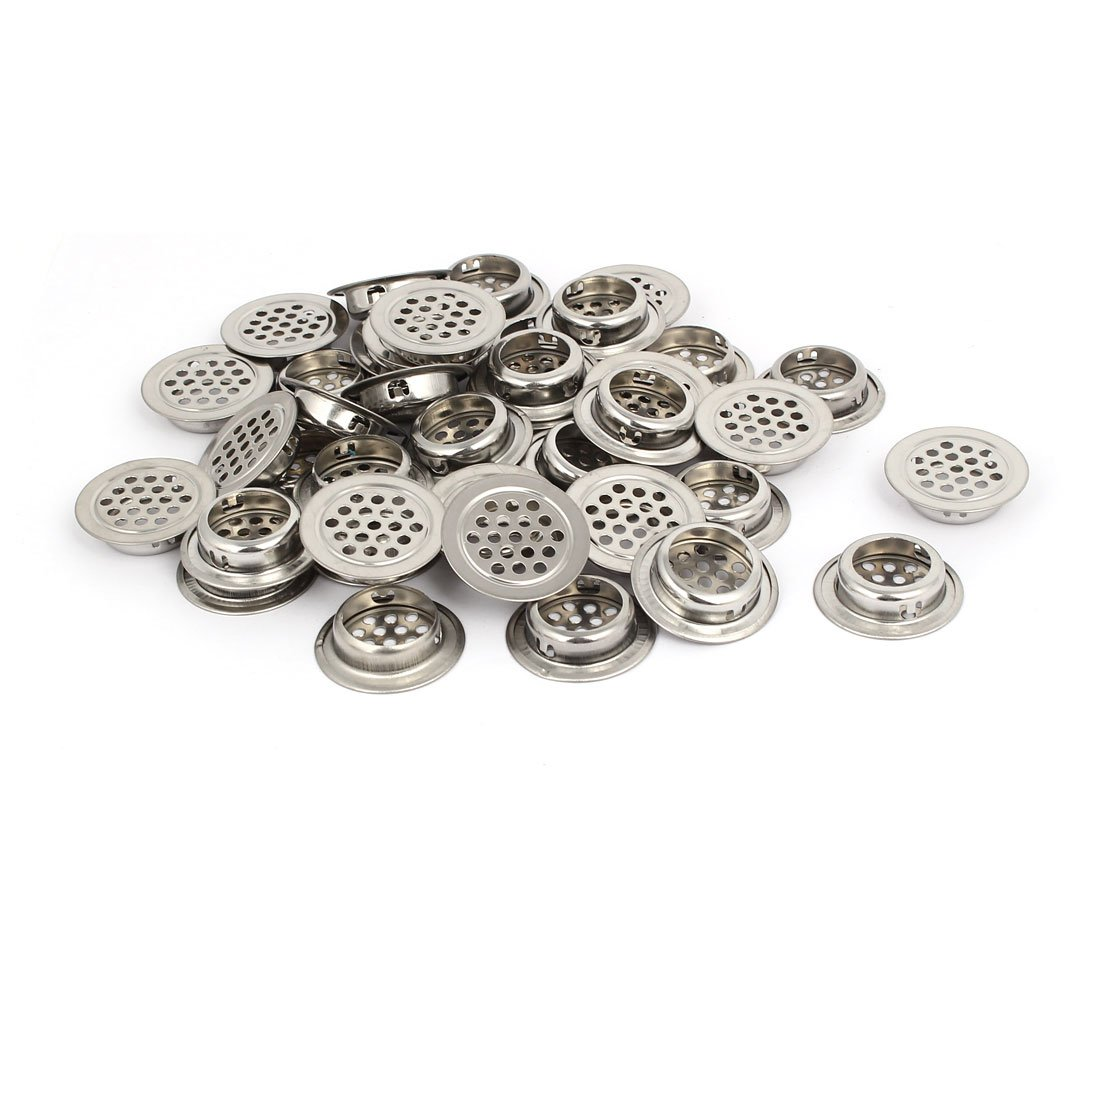 uxcell 25mm Bottom Dia Stainless Steel Round Shaped Mesh Hole Air Vent Louver 40pcs